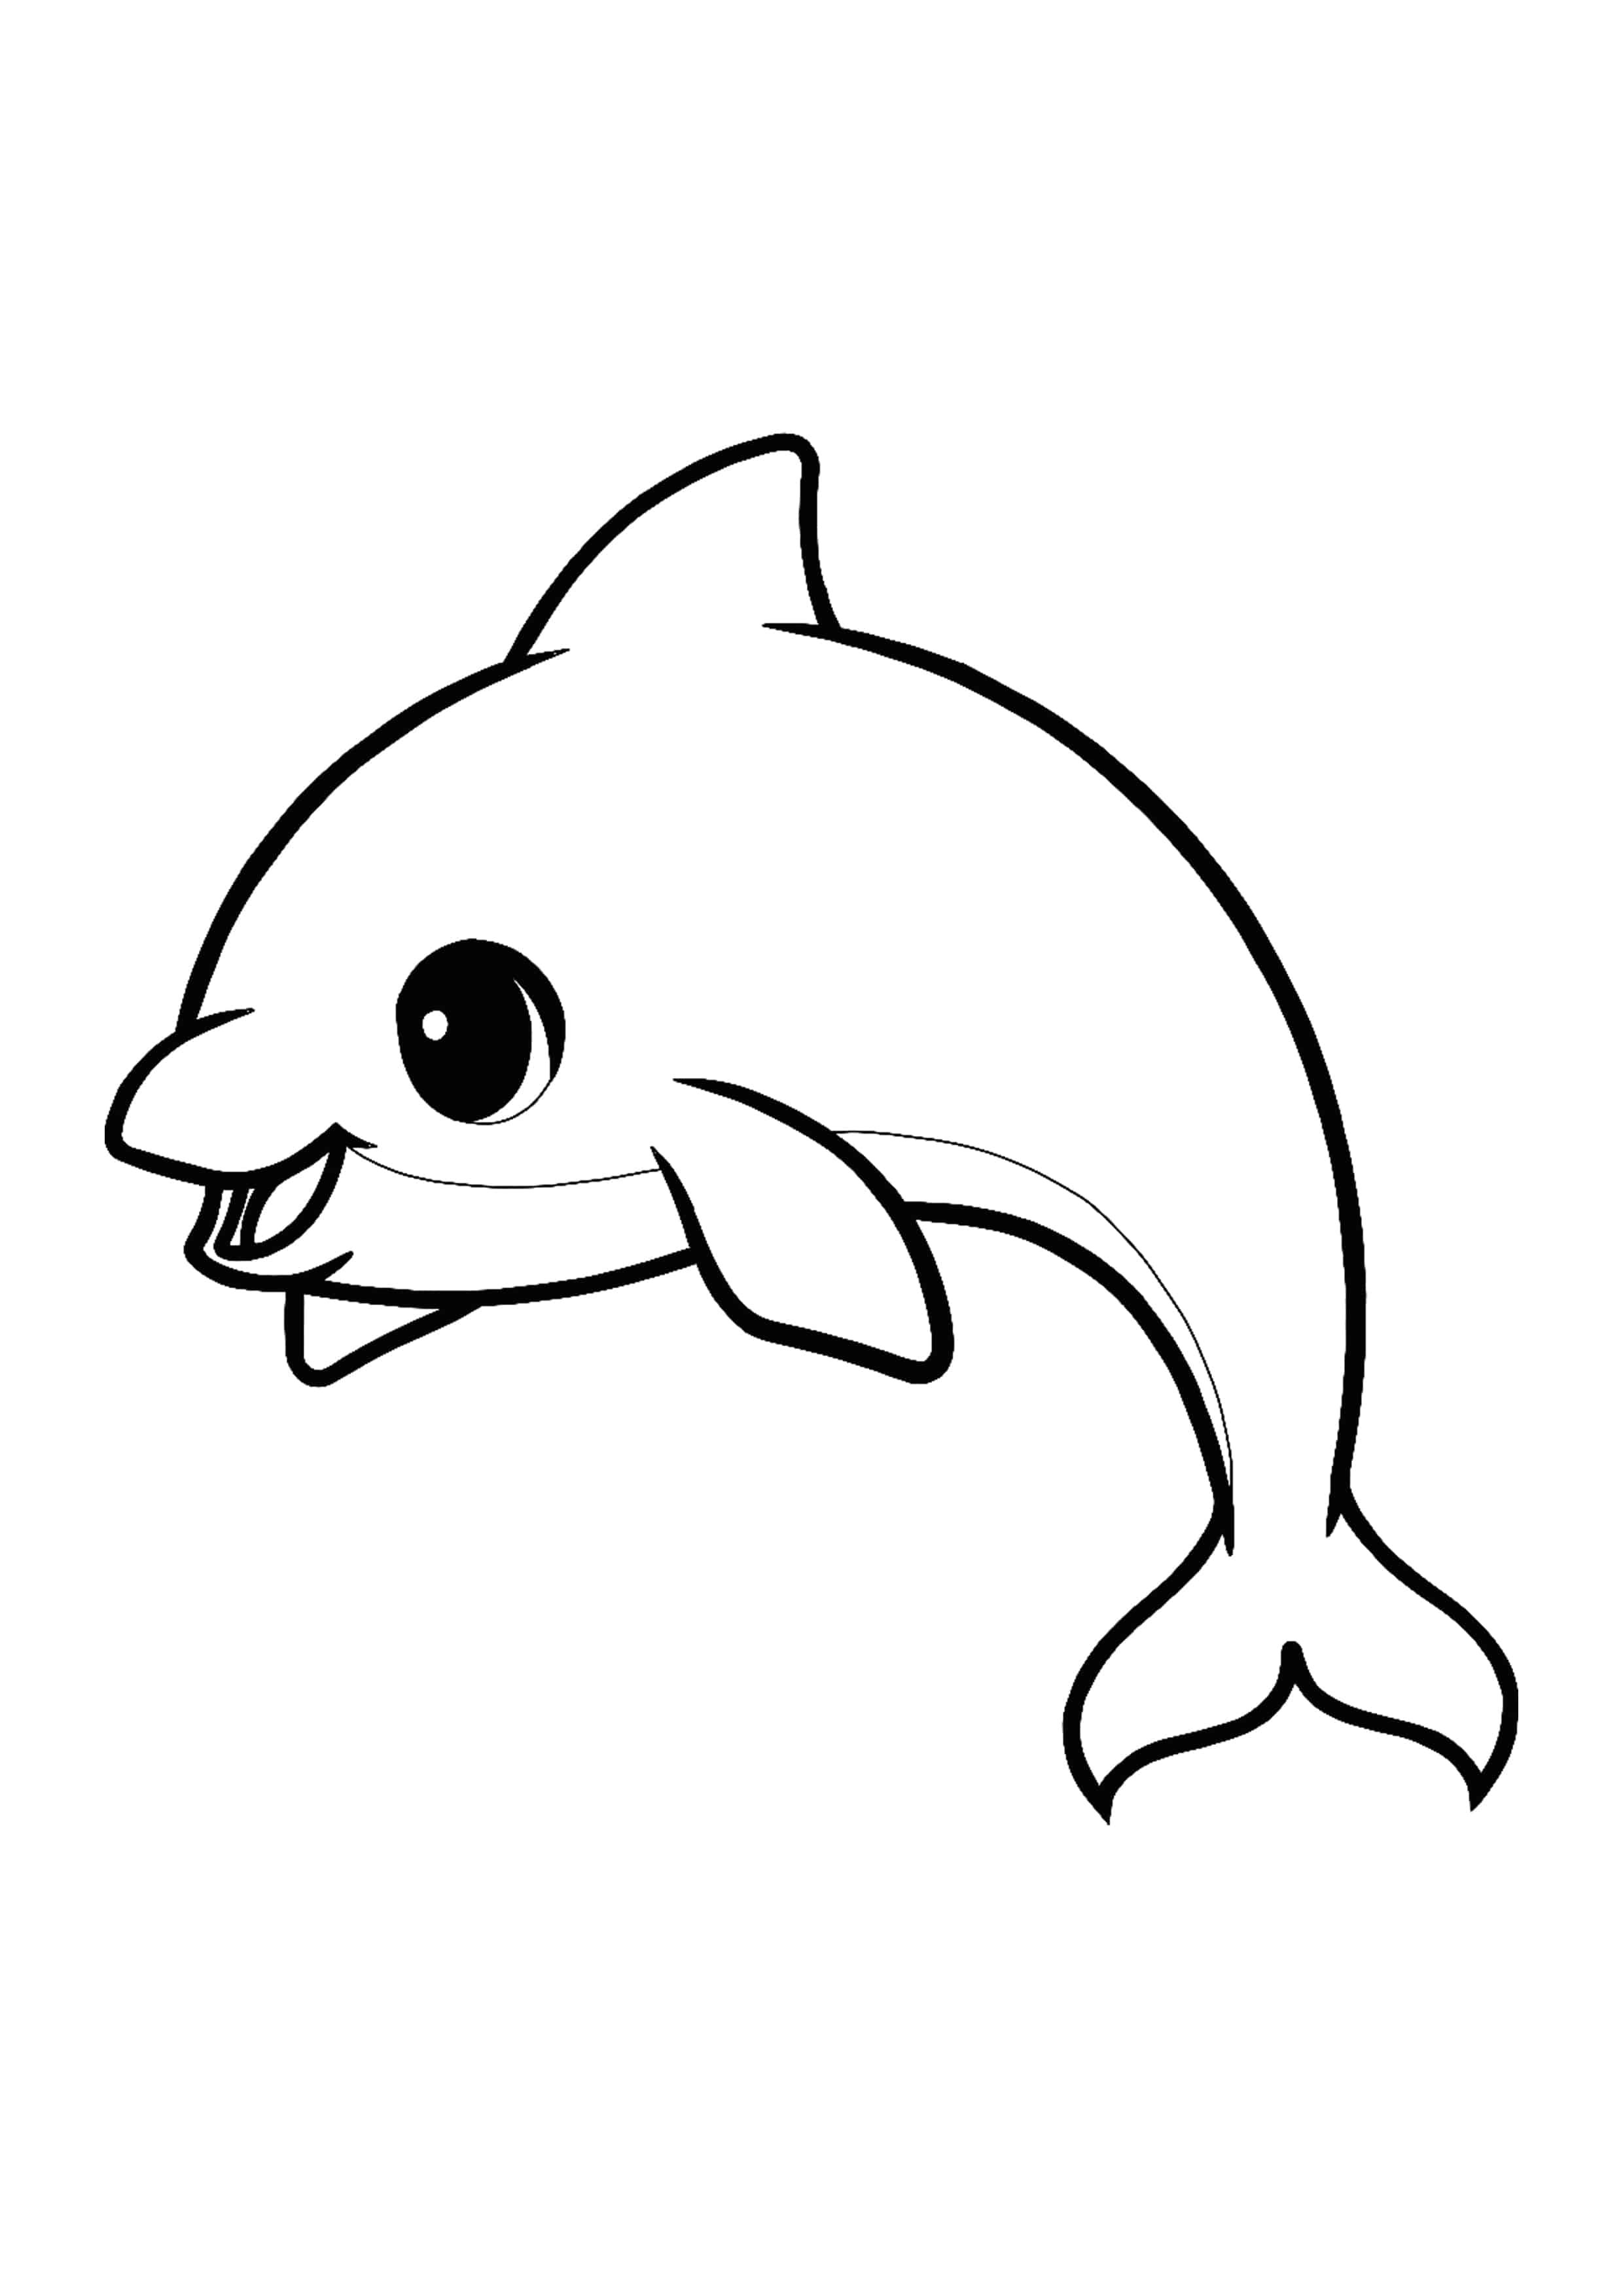 Kawaii Dolphin Coloring Page Dolphin Coloring Pages Manga Coloring Book Dolphin Coloring Page